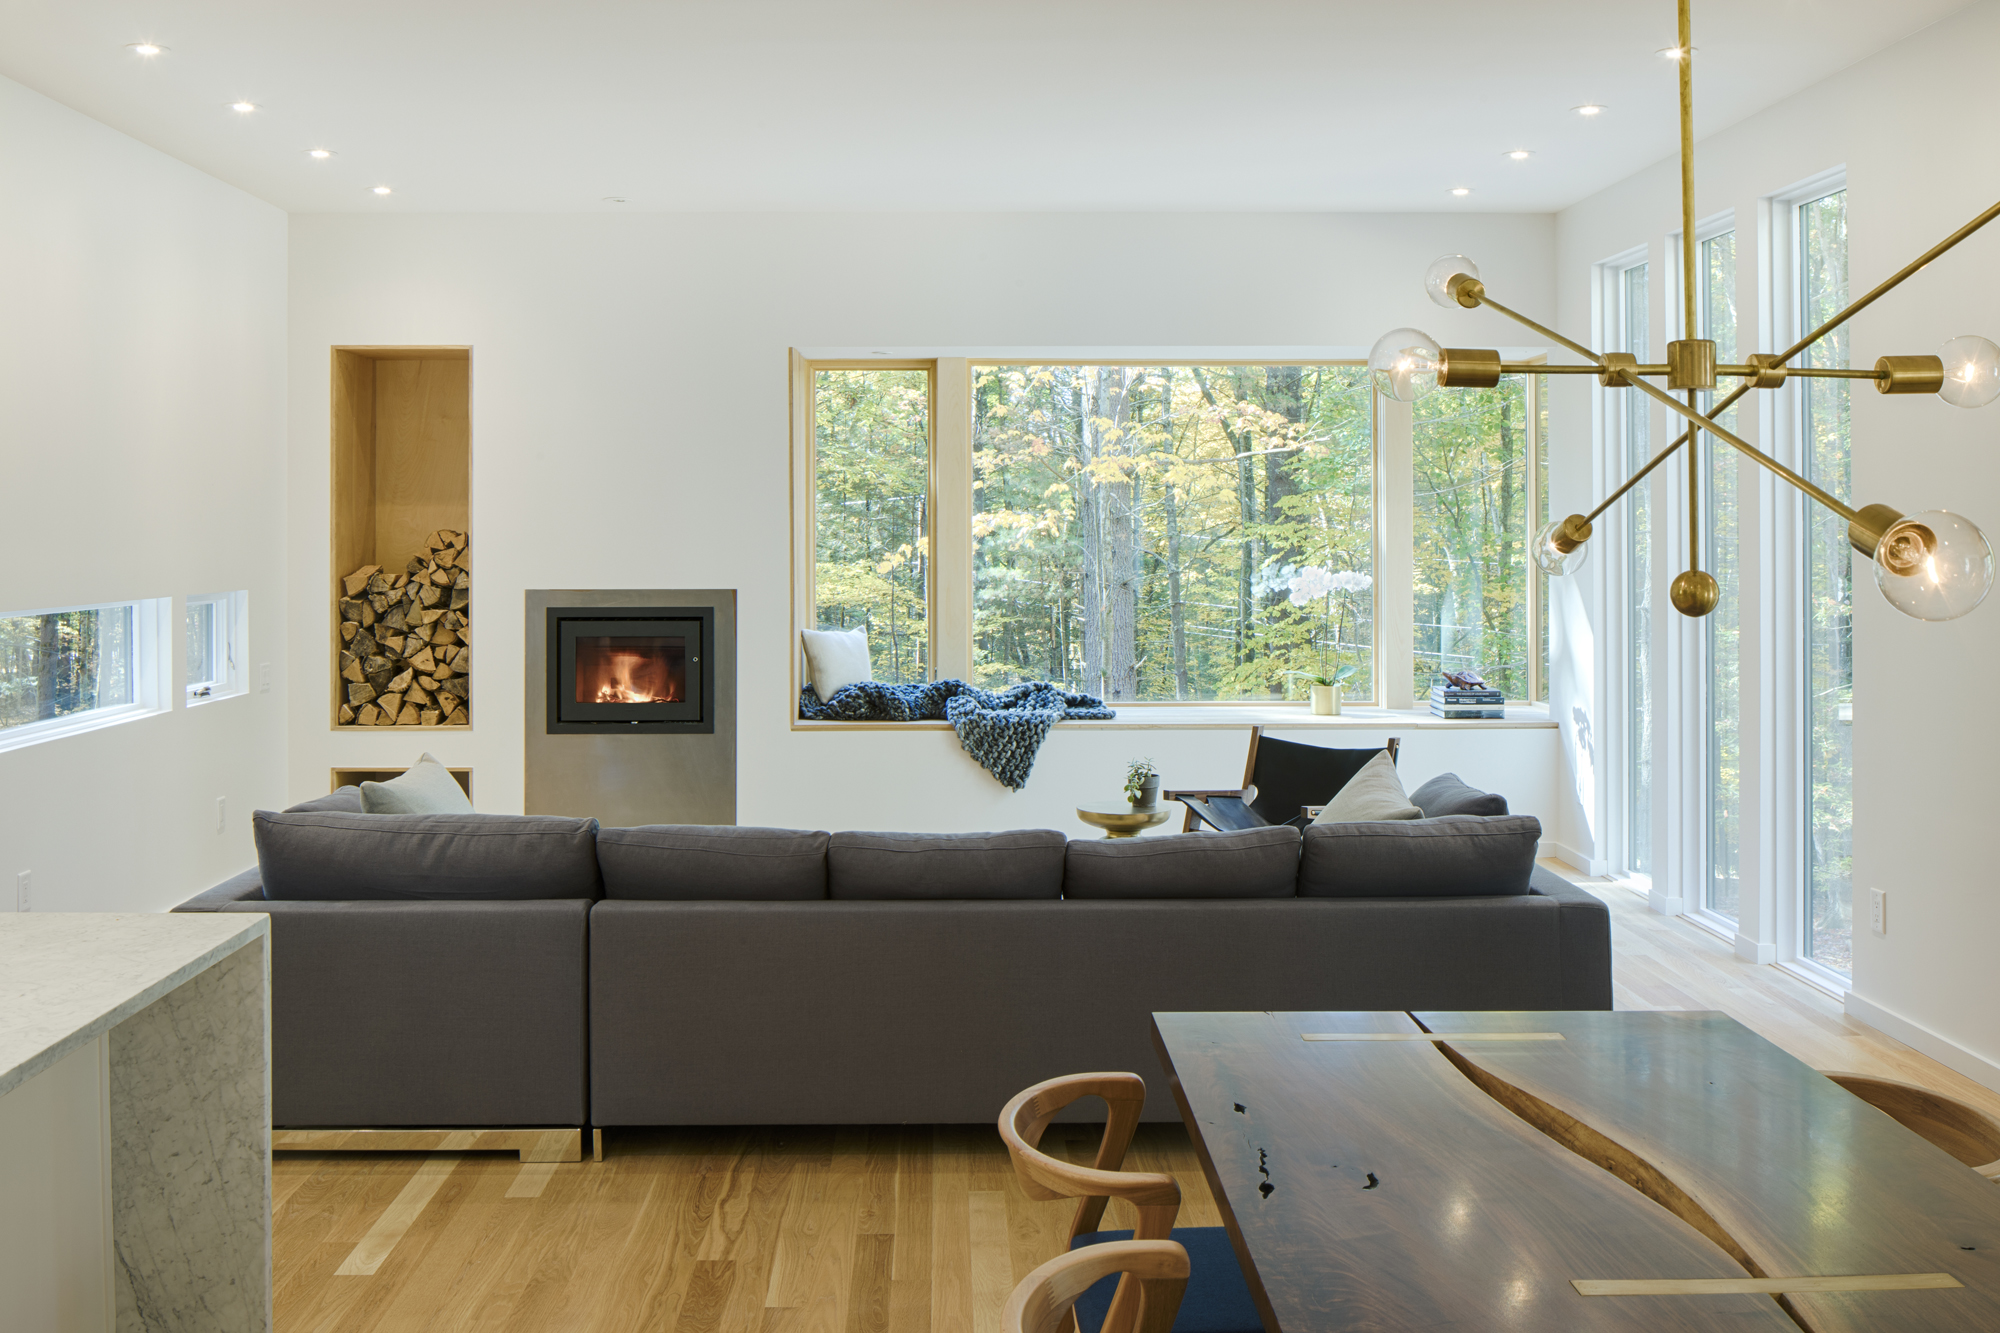 Designing for a Modern Home in the Woods